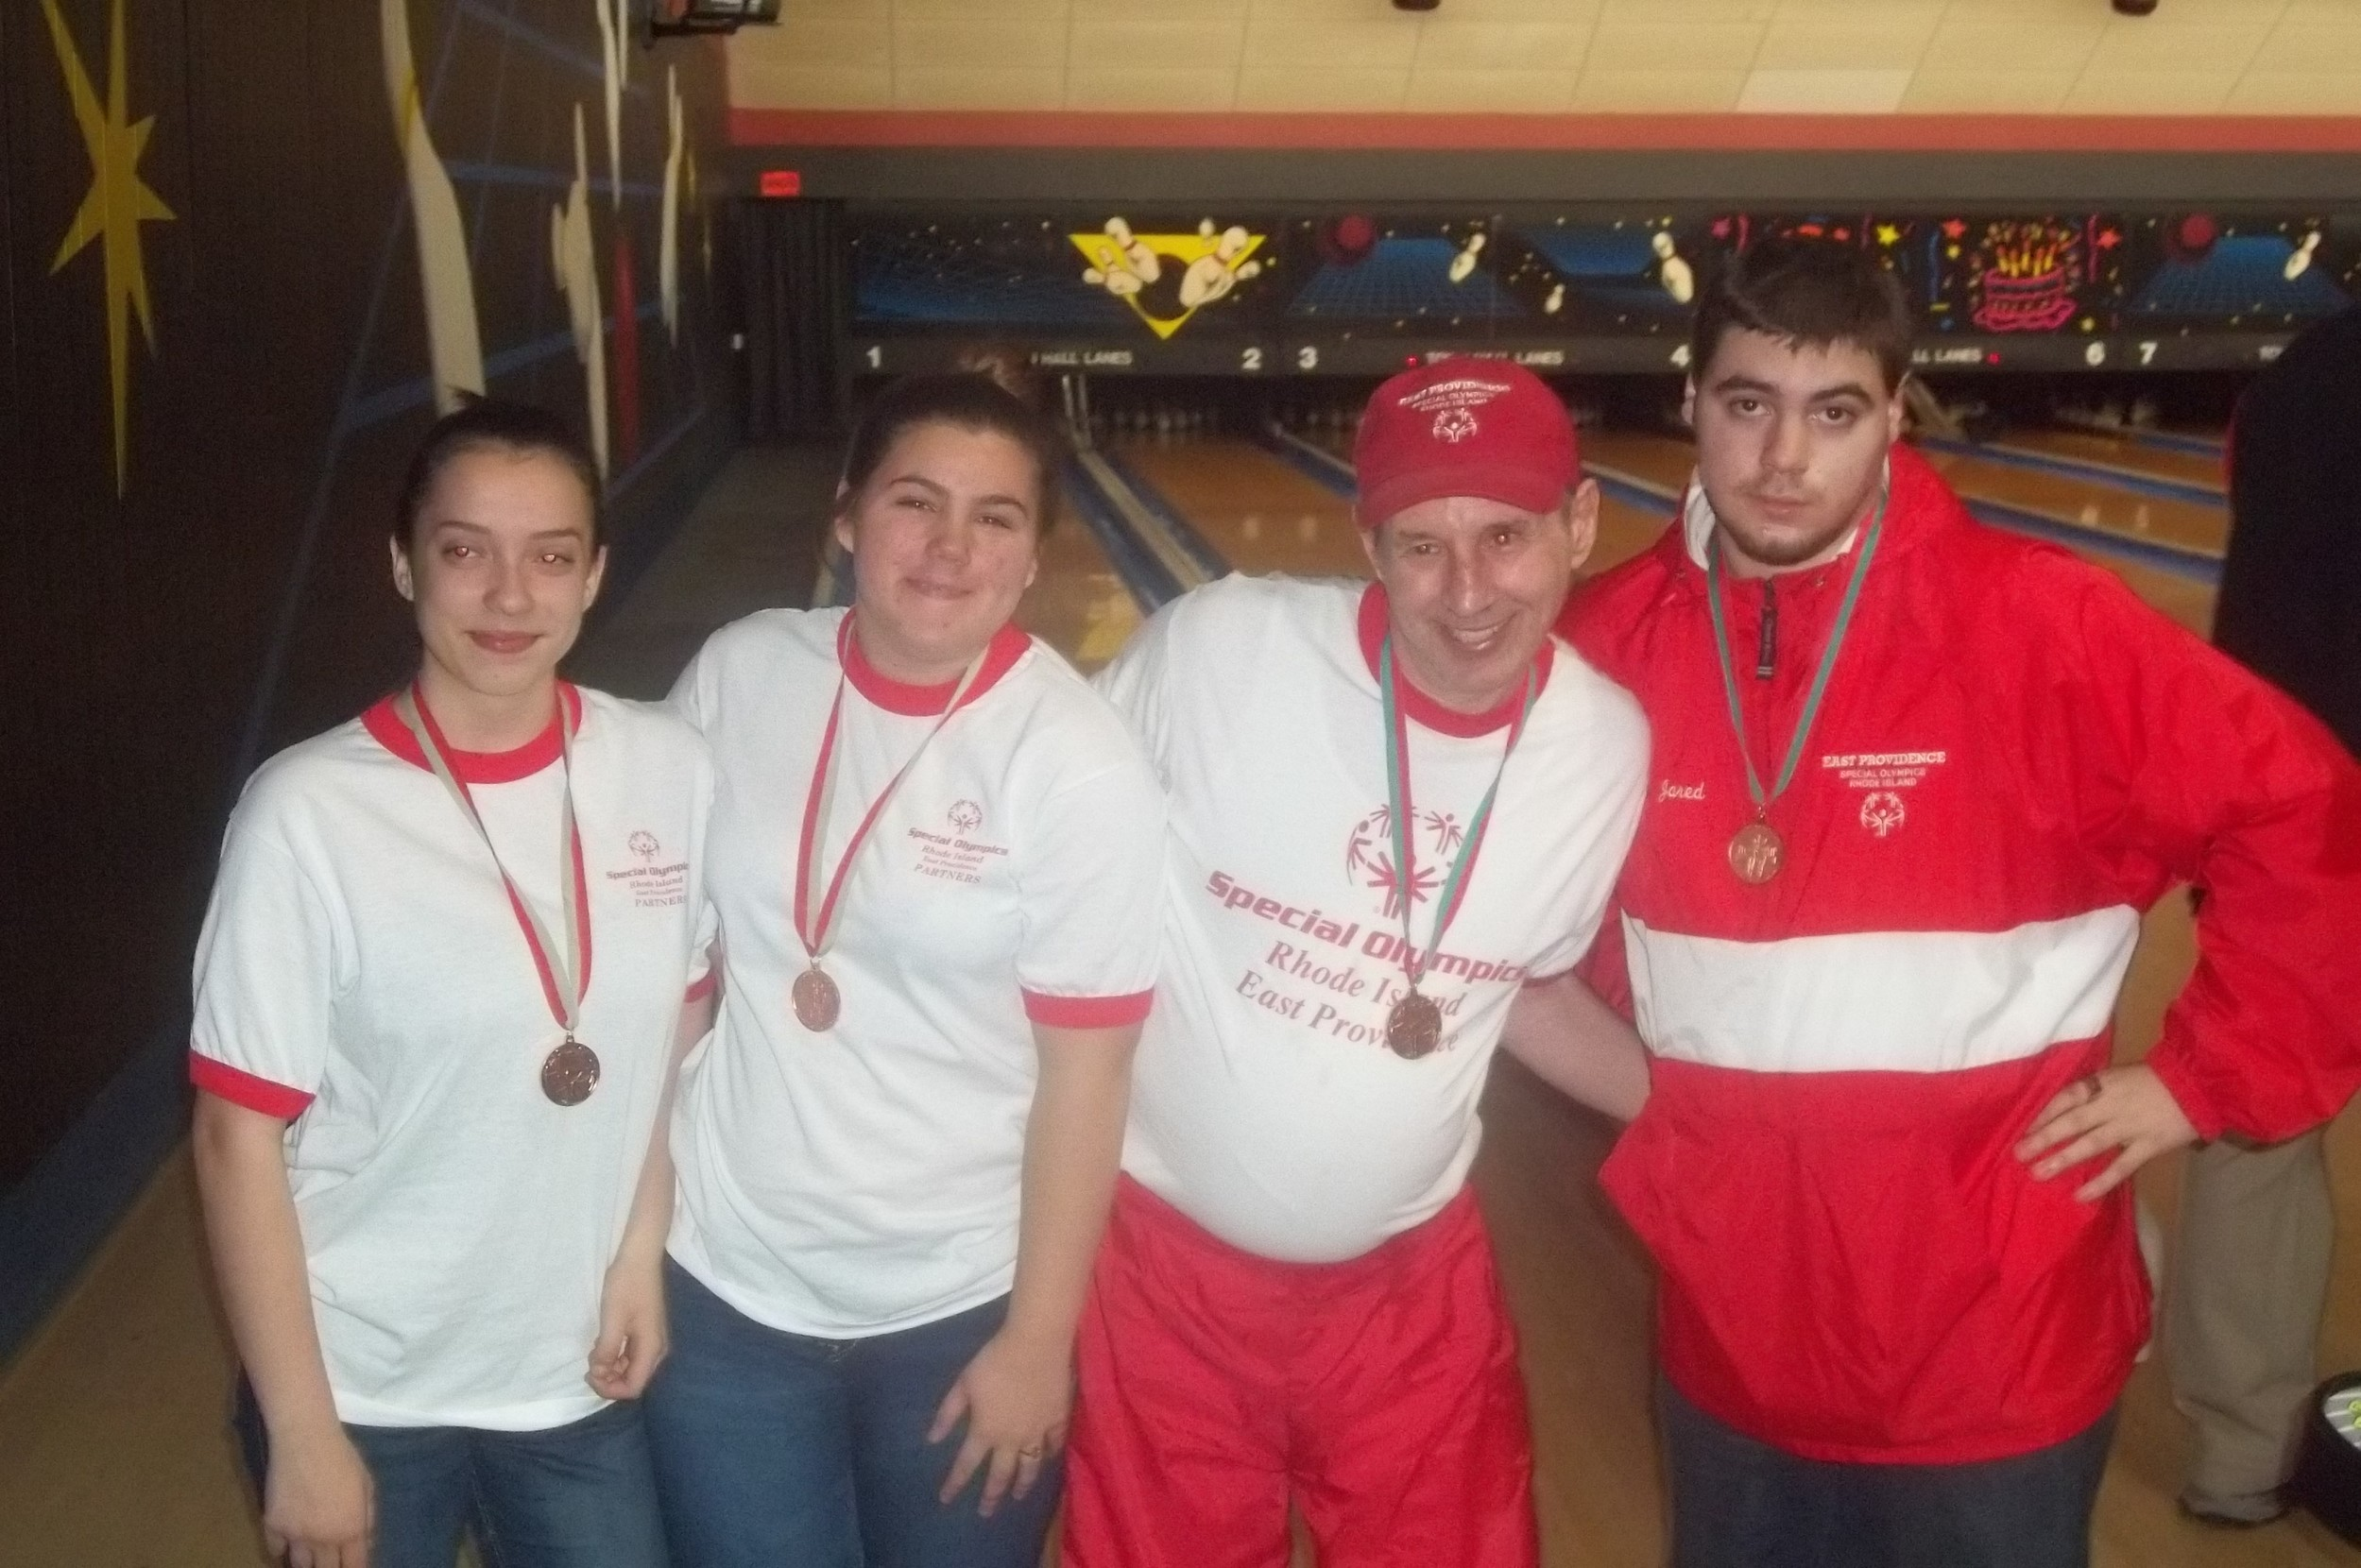 BRONZE MEDAL WINNERS Left to Right : Alyssa Vieira, Hayleigh Rivers, David Marshall, and Jared Rivers